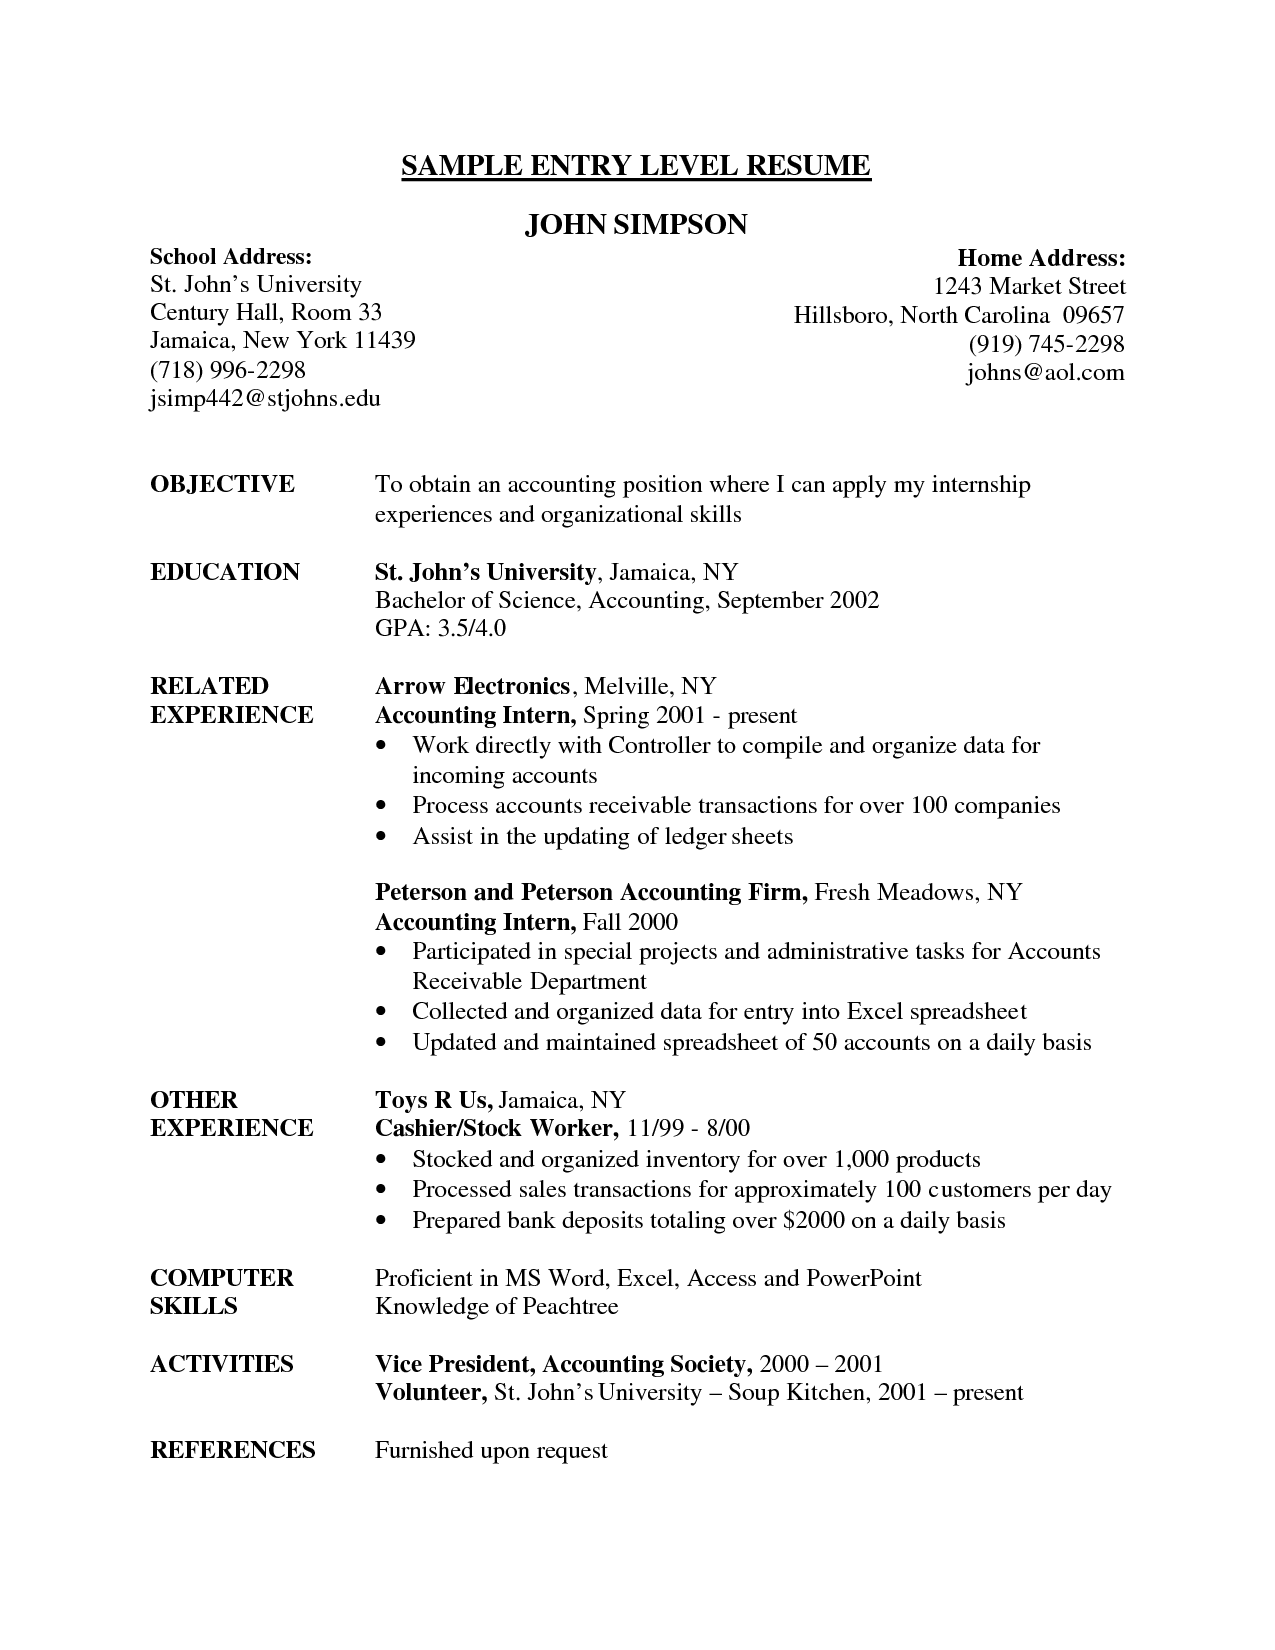 Example Of Resume Profile Entry Level http//www